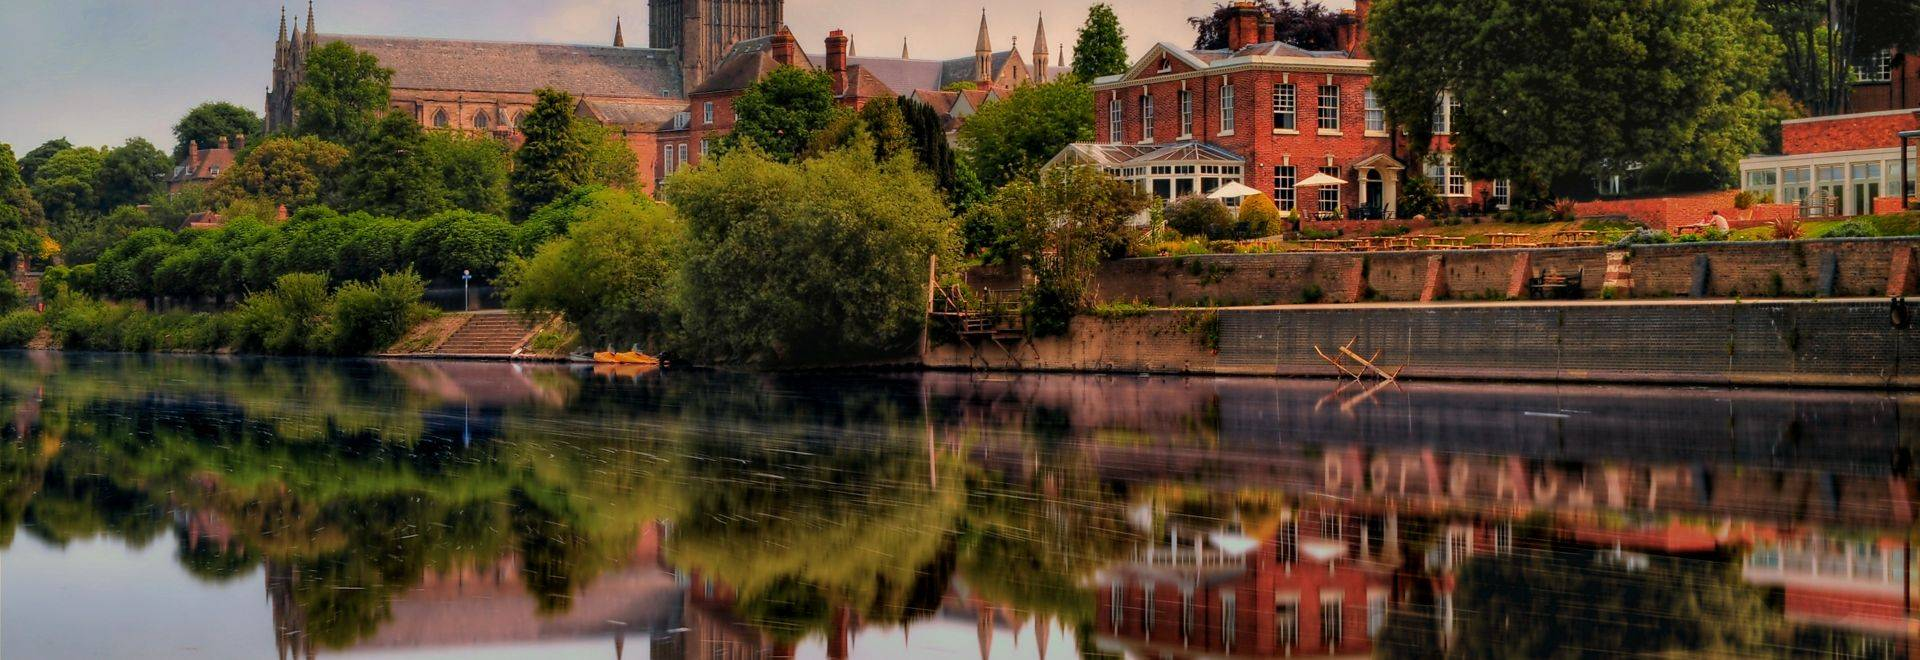 This is a shot of Worcester Cathedral on the banks of the river Severn.